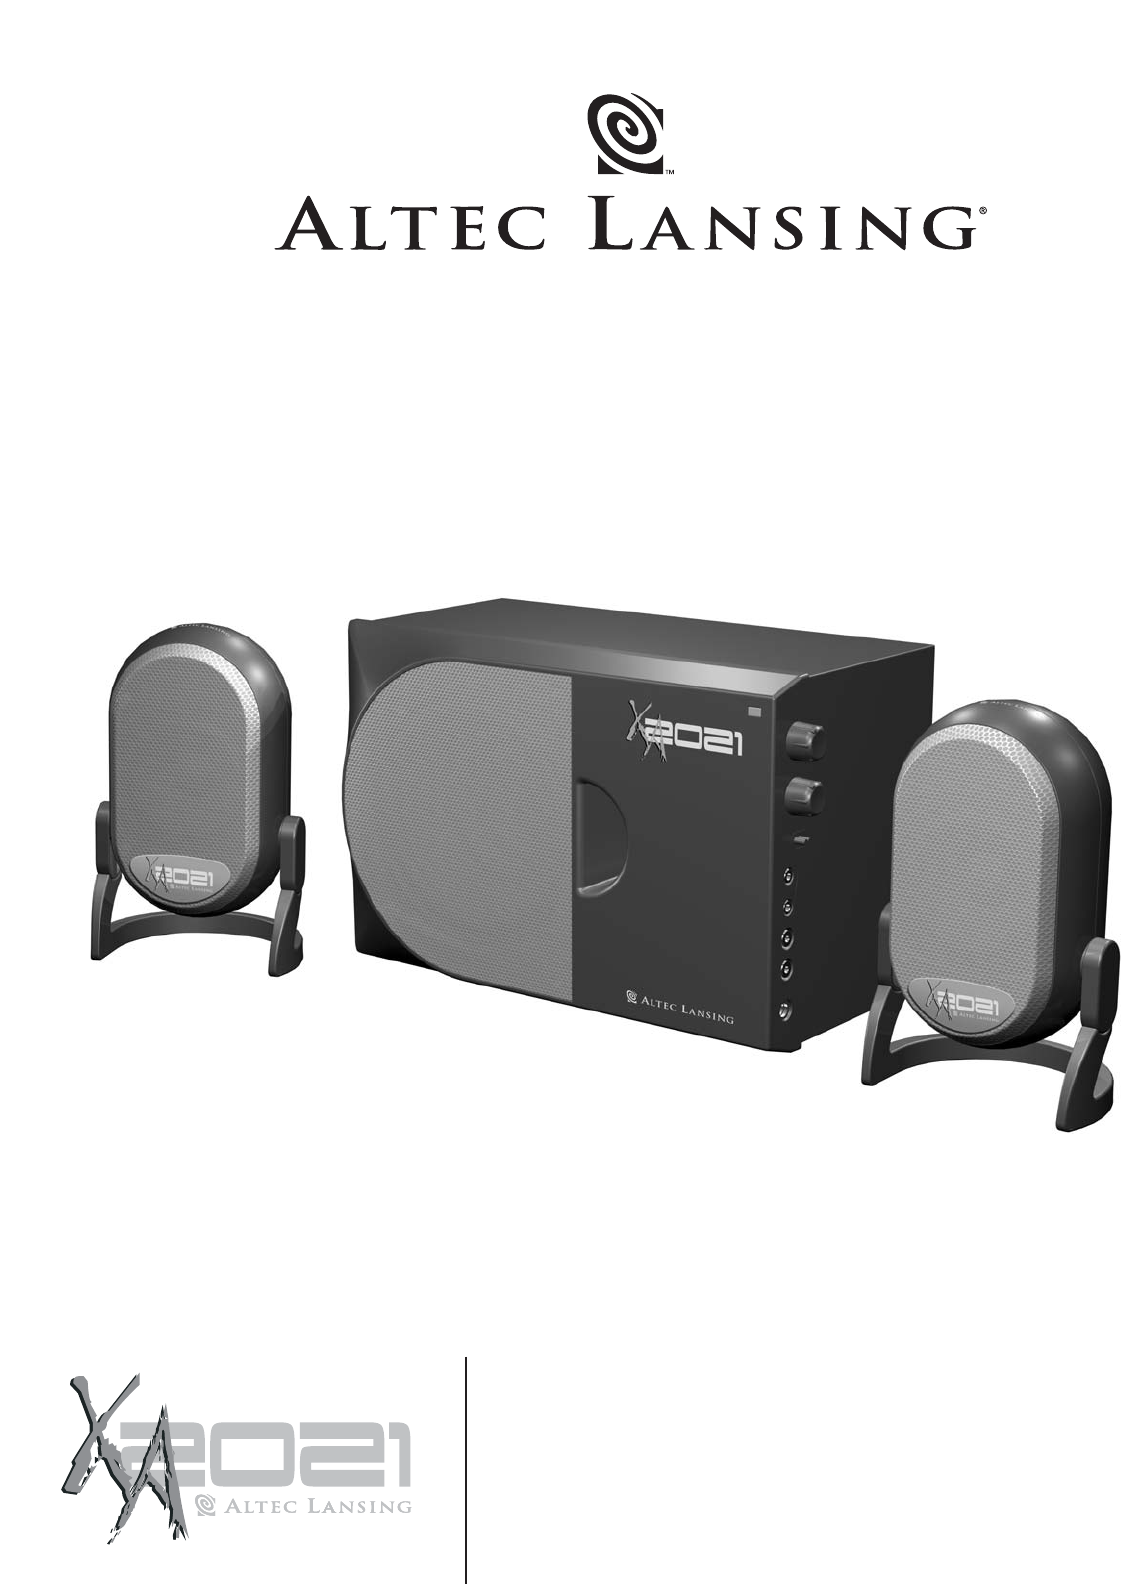 altec lansing manuals in pdf